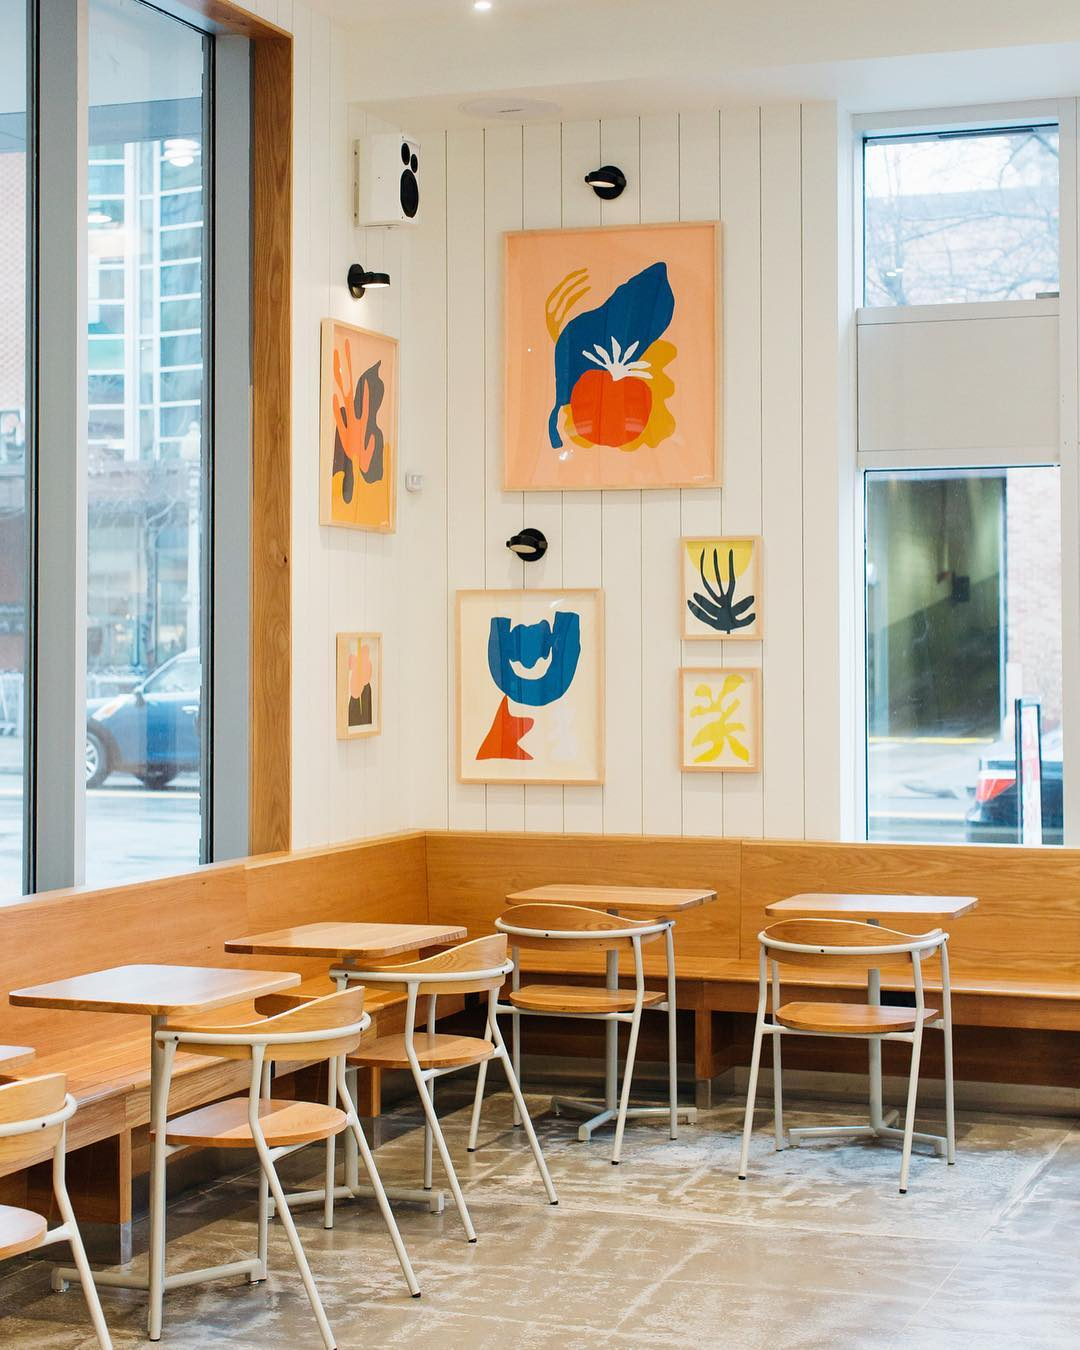 A myriad of Tappan prints in the Logan Circle   SWEETGREEN   in Washington D.C.